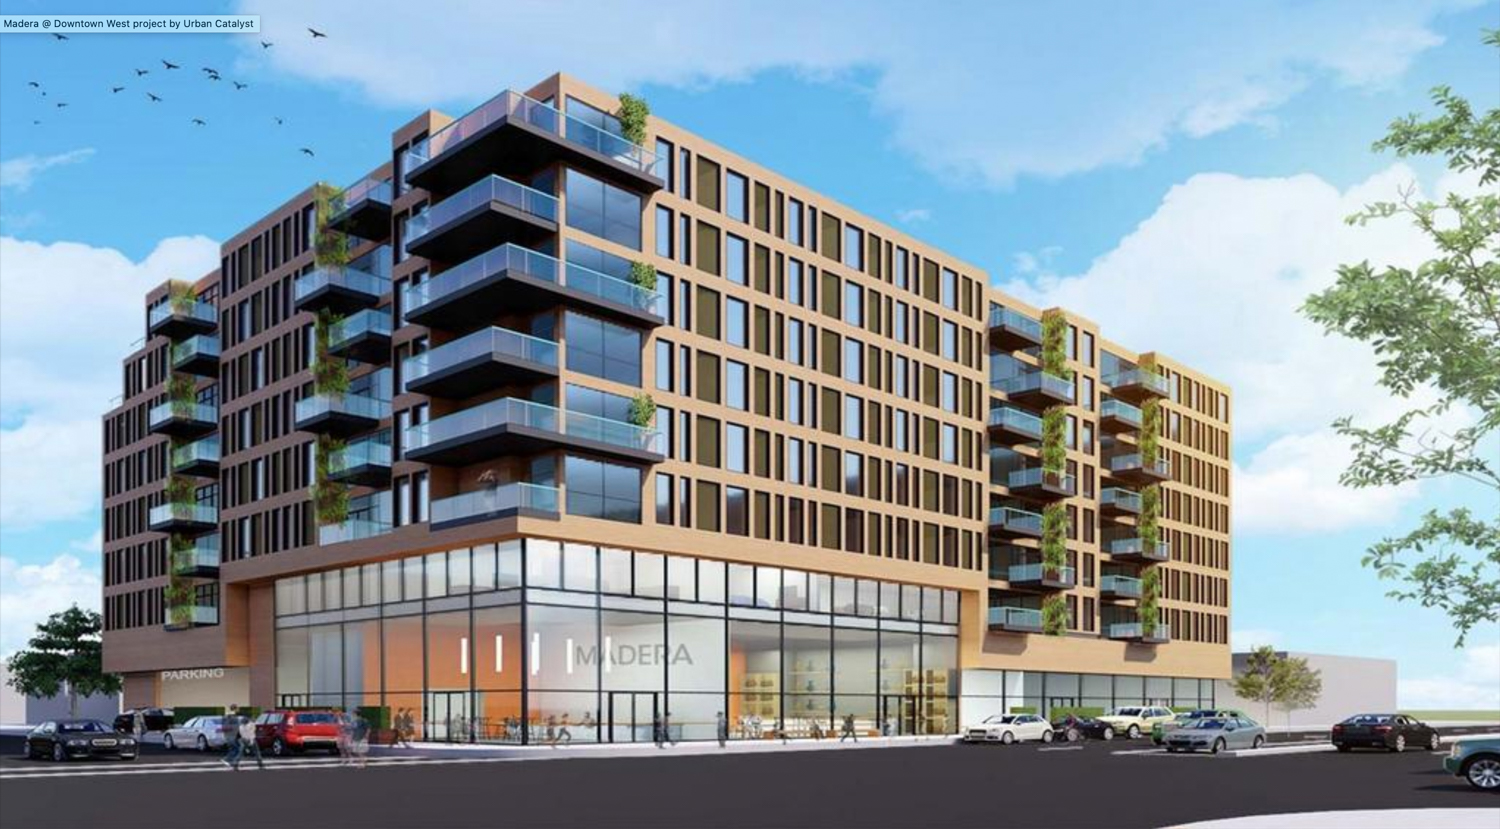 Alternative design rendering from Summer of 486 West San Carlos Street, imgae courtesy Aedis Architects